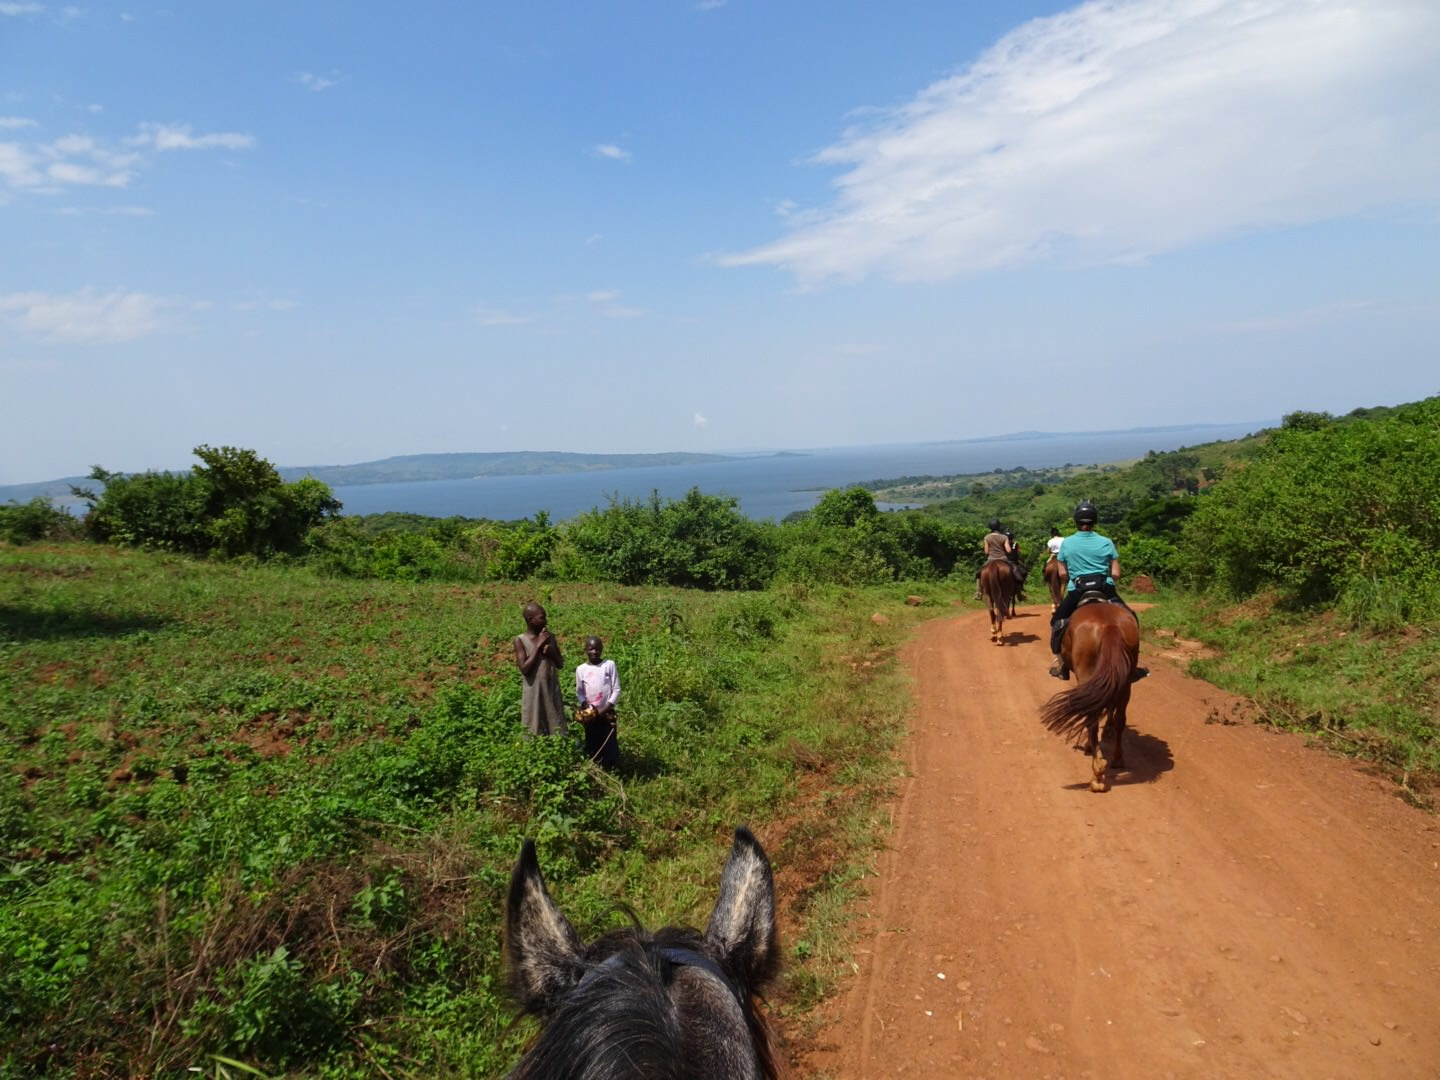 lake victoria, Uganda – Riding by the Nile and Lake Victoria, In The Saddle